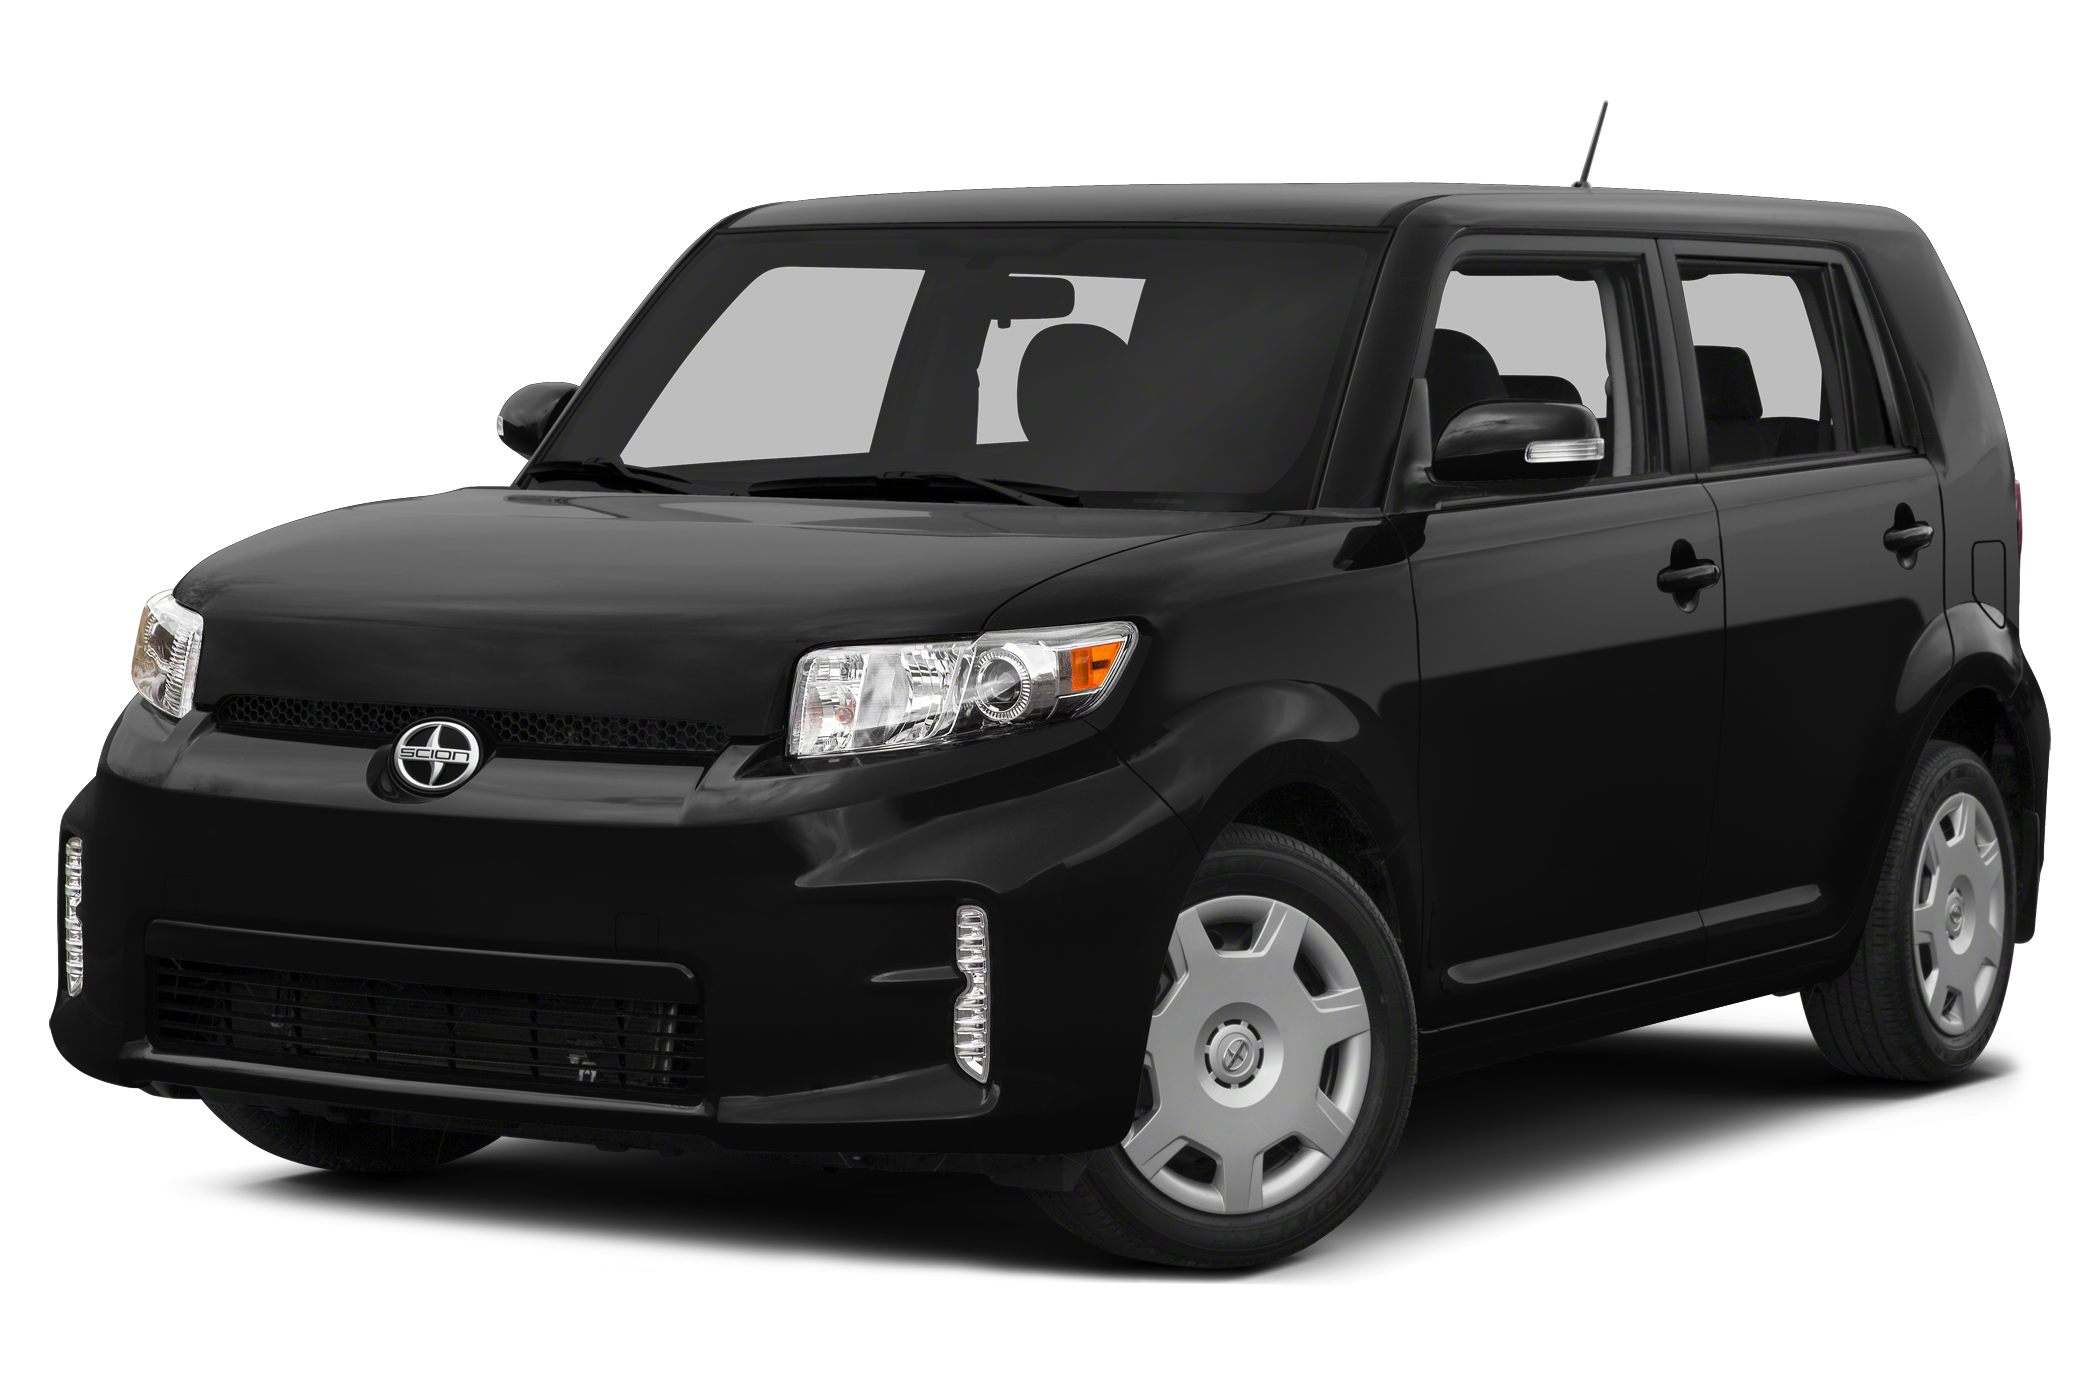 2015 Scion xB  Why Buy From Gettel Hyundai of Lakewood 3 Day Exchange Policy on any vehicle purch